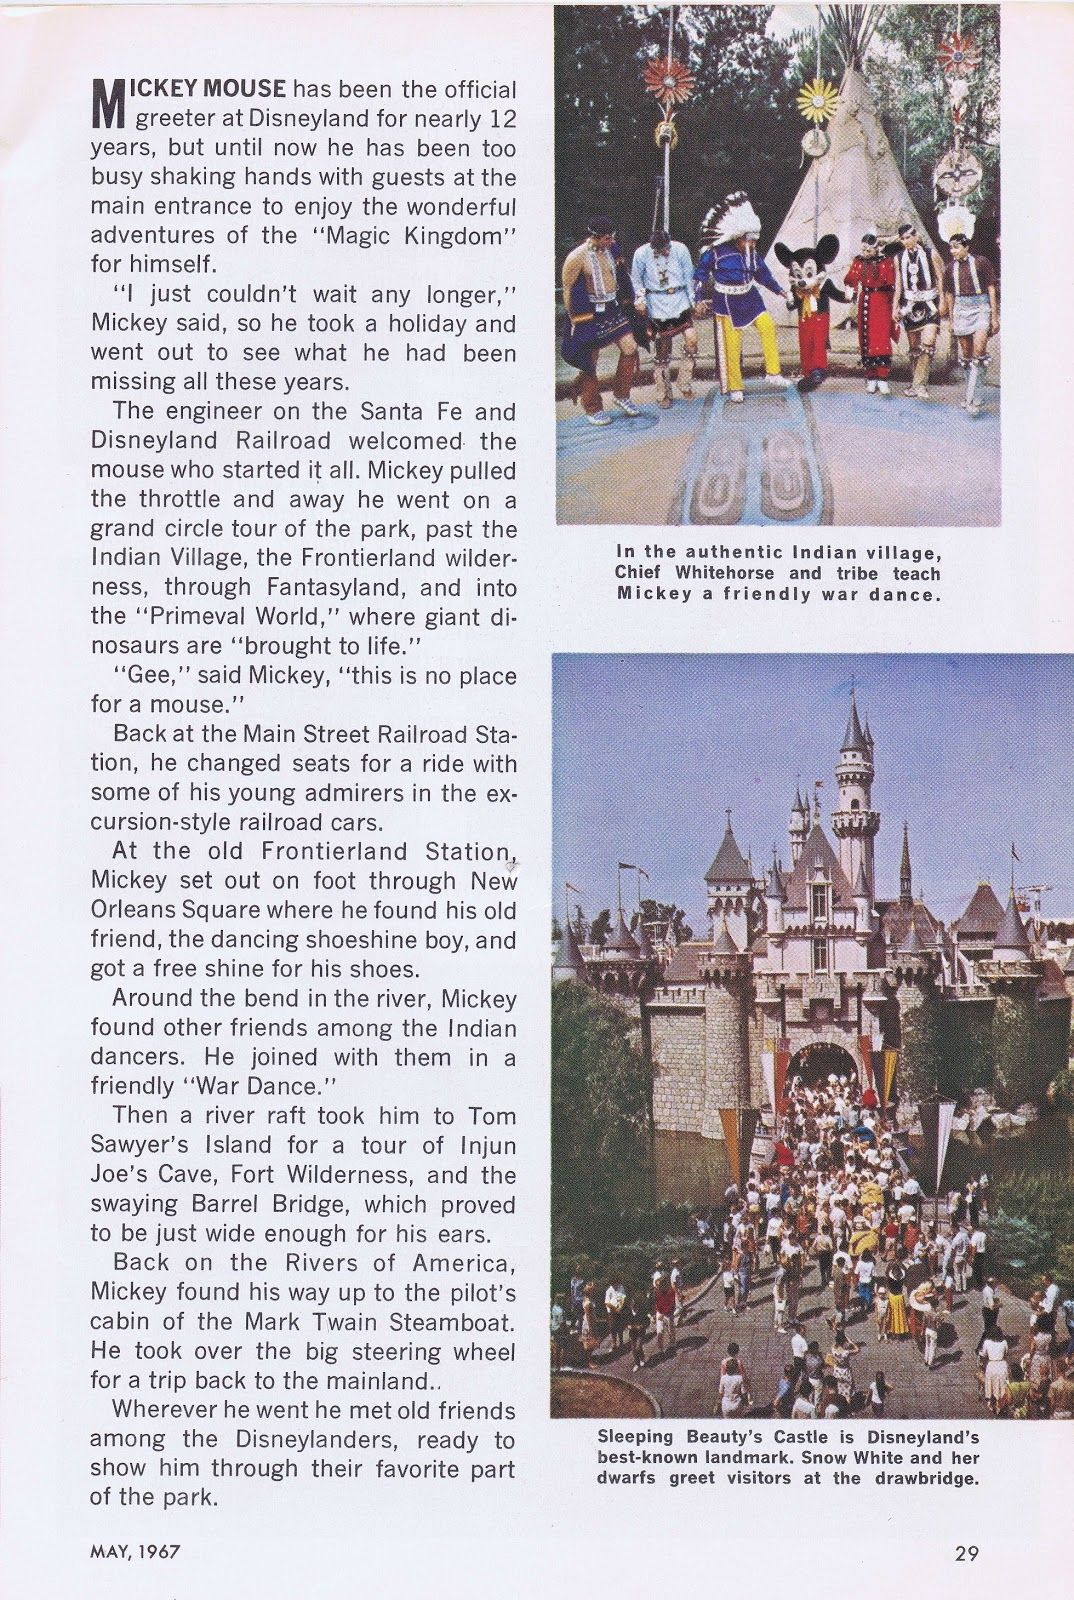 jim fanning s tulgey wood  enjoy this disneyland photo essay starring the world s most famous mouse from jack and jill magazine 1967